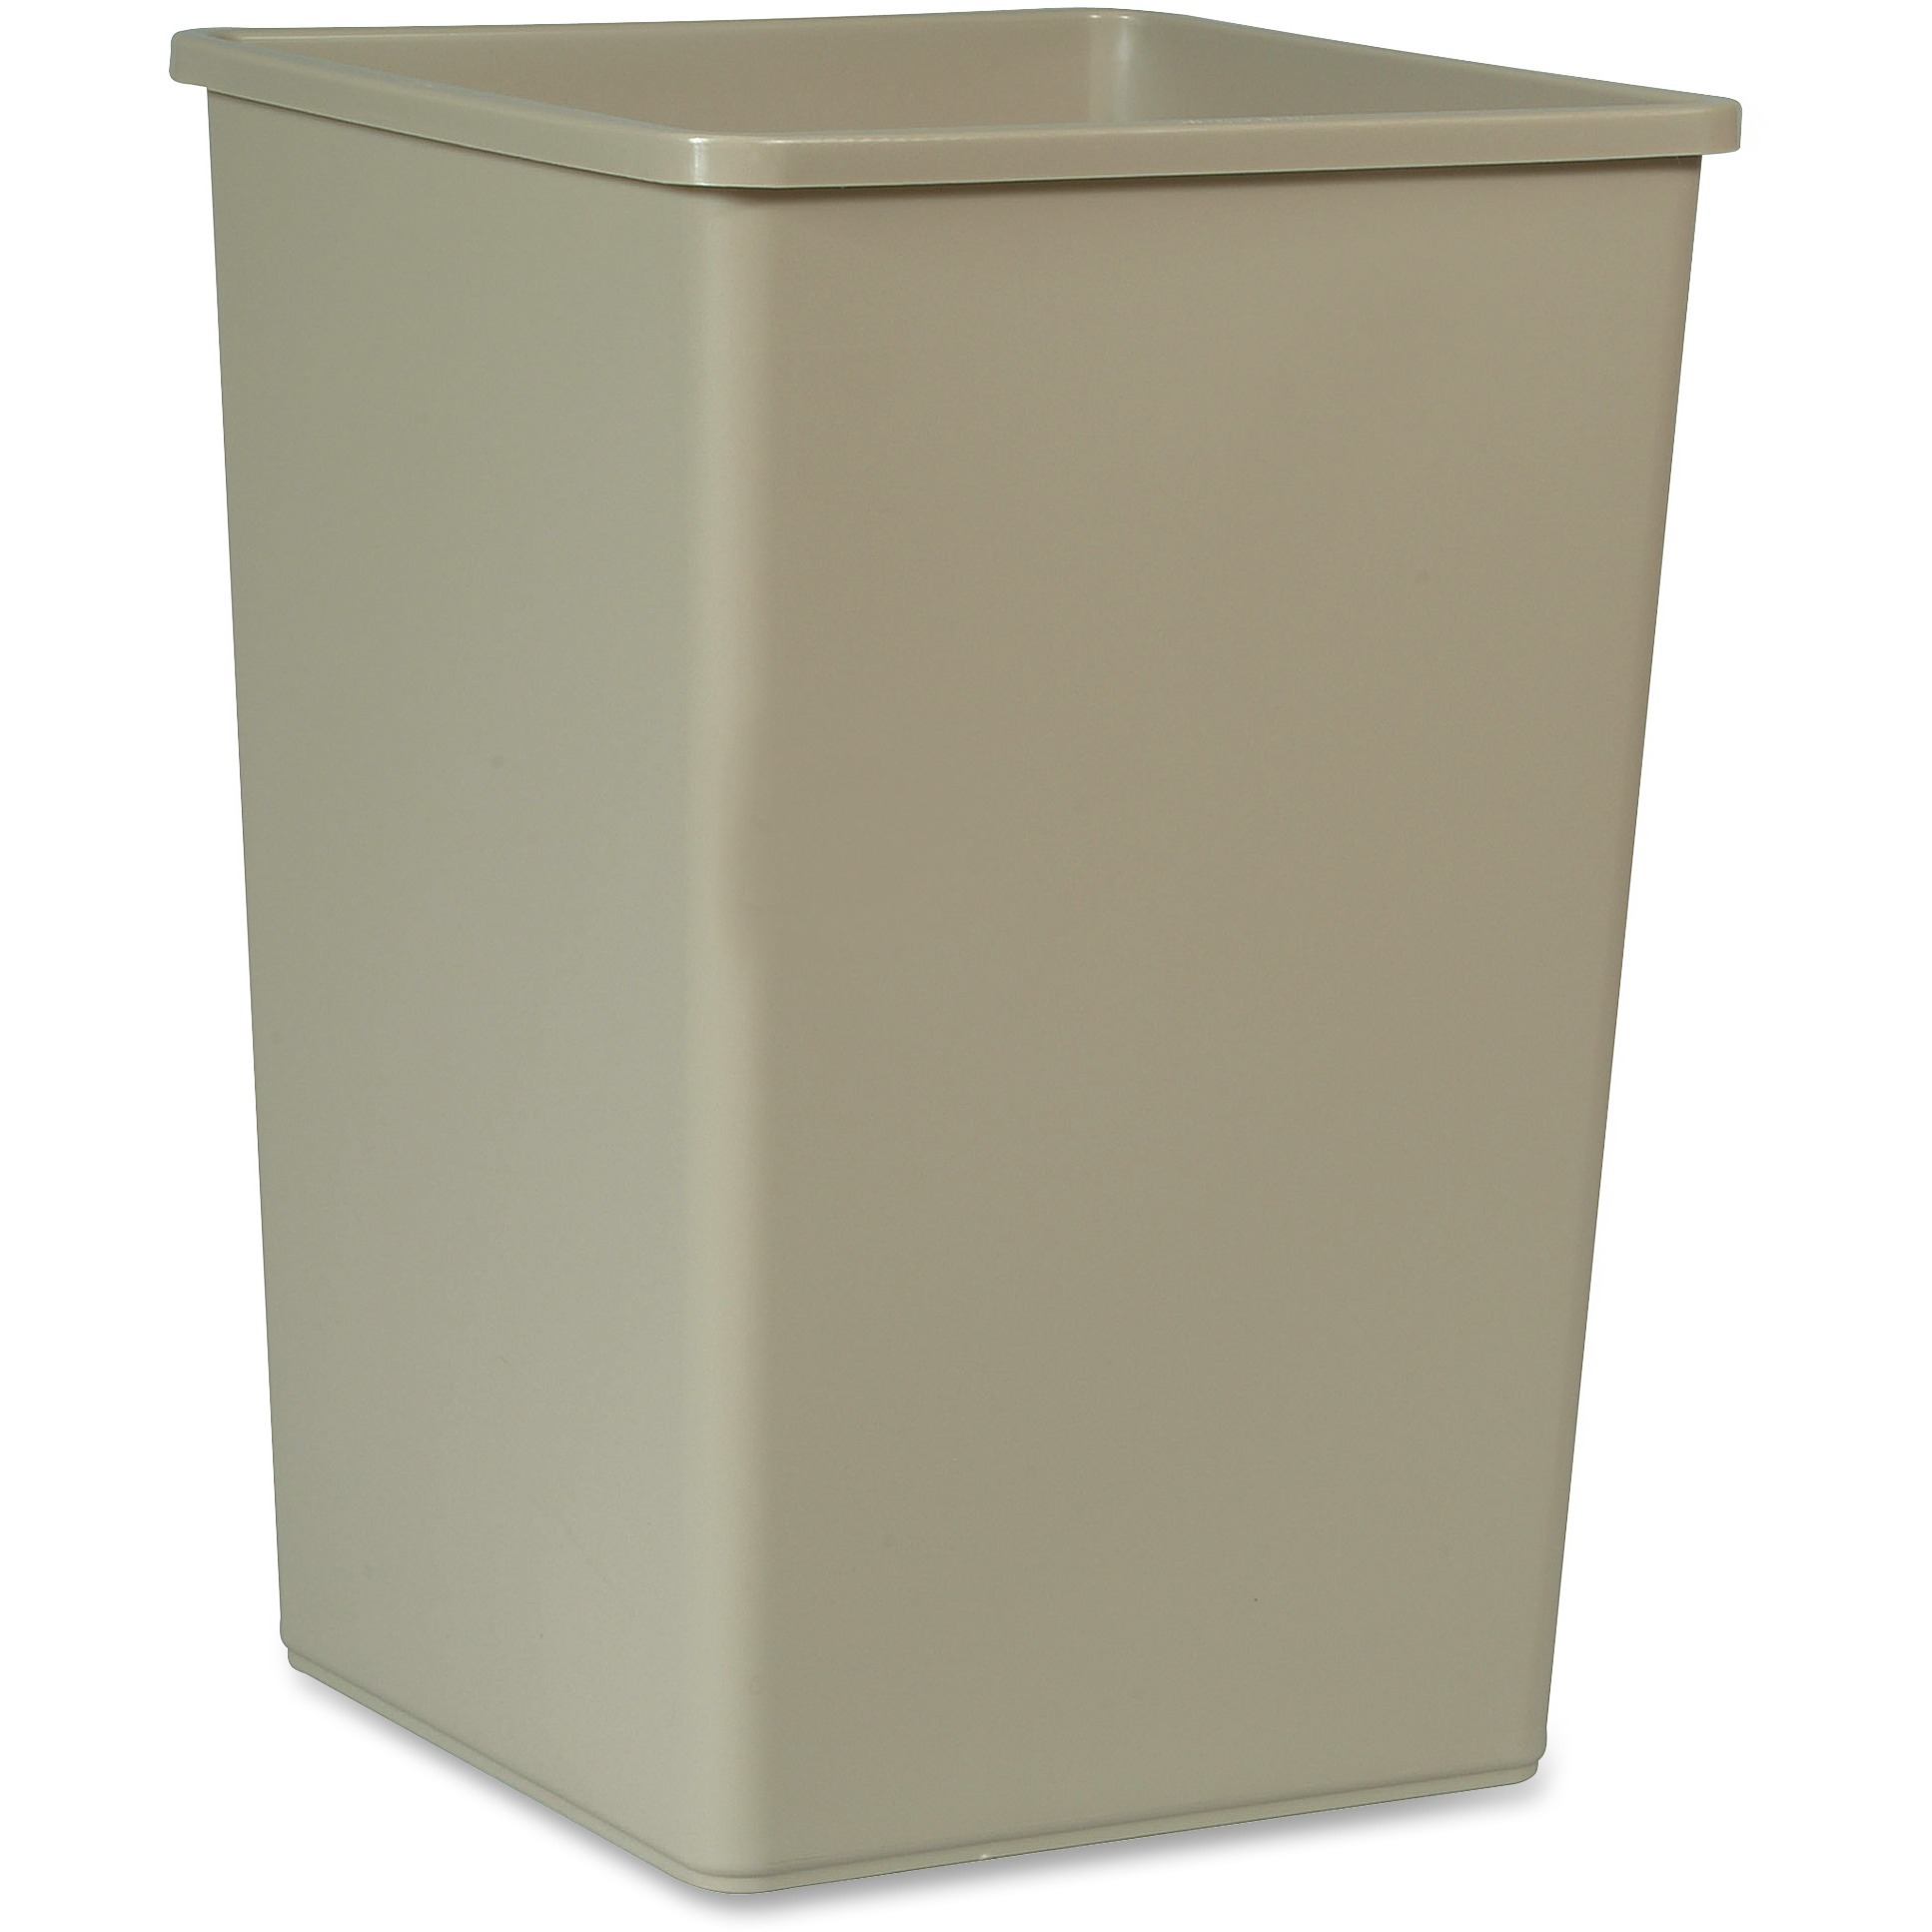 Rubbermaid Commercial, RCP395800BG, 35-gal Untouchable Sqre Container, 1, Beige